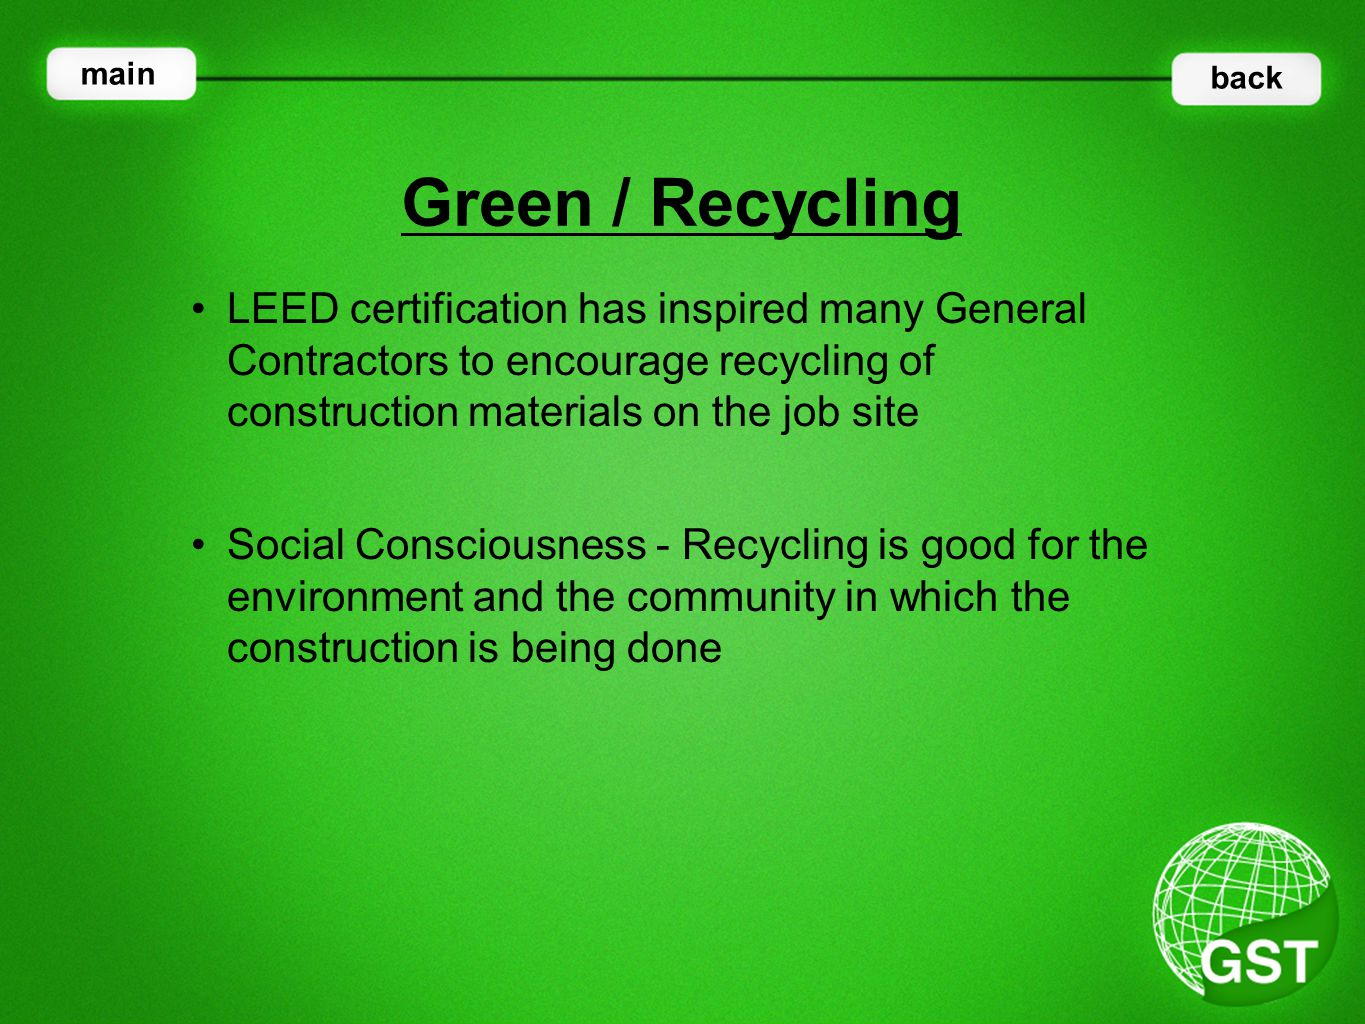 LEED certification has inspired many General Contractors to encourage recycling of construction materials on the job site Green / Recycling main back Social Consciousness - Recycling is good for the environment and the community in which the construction is being done